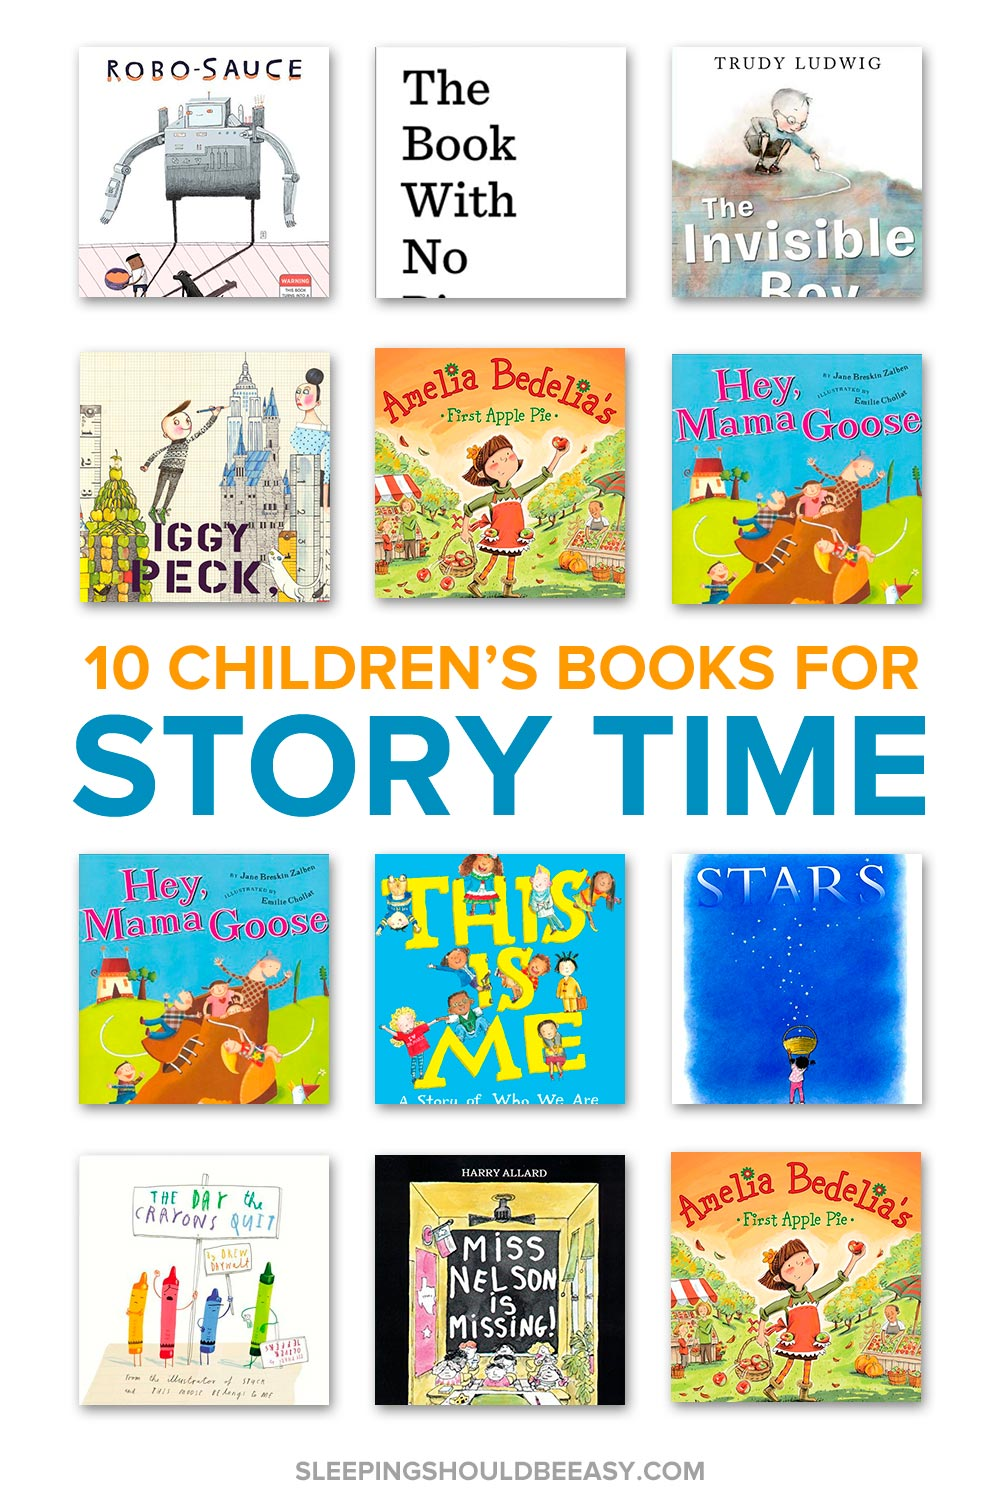 Children's story time books